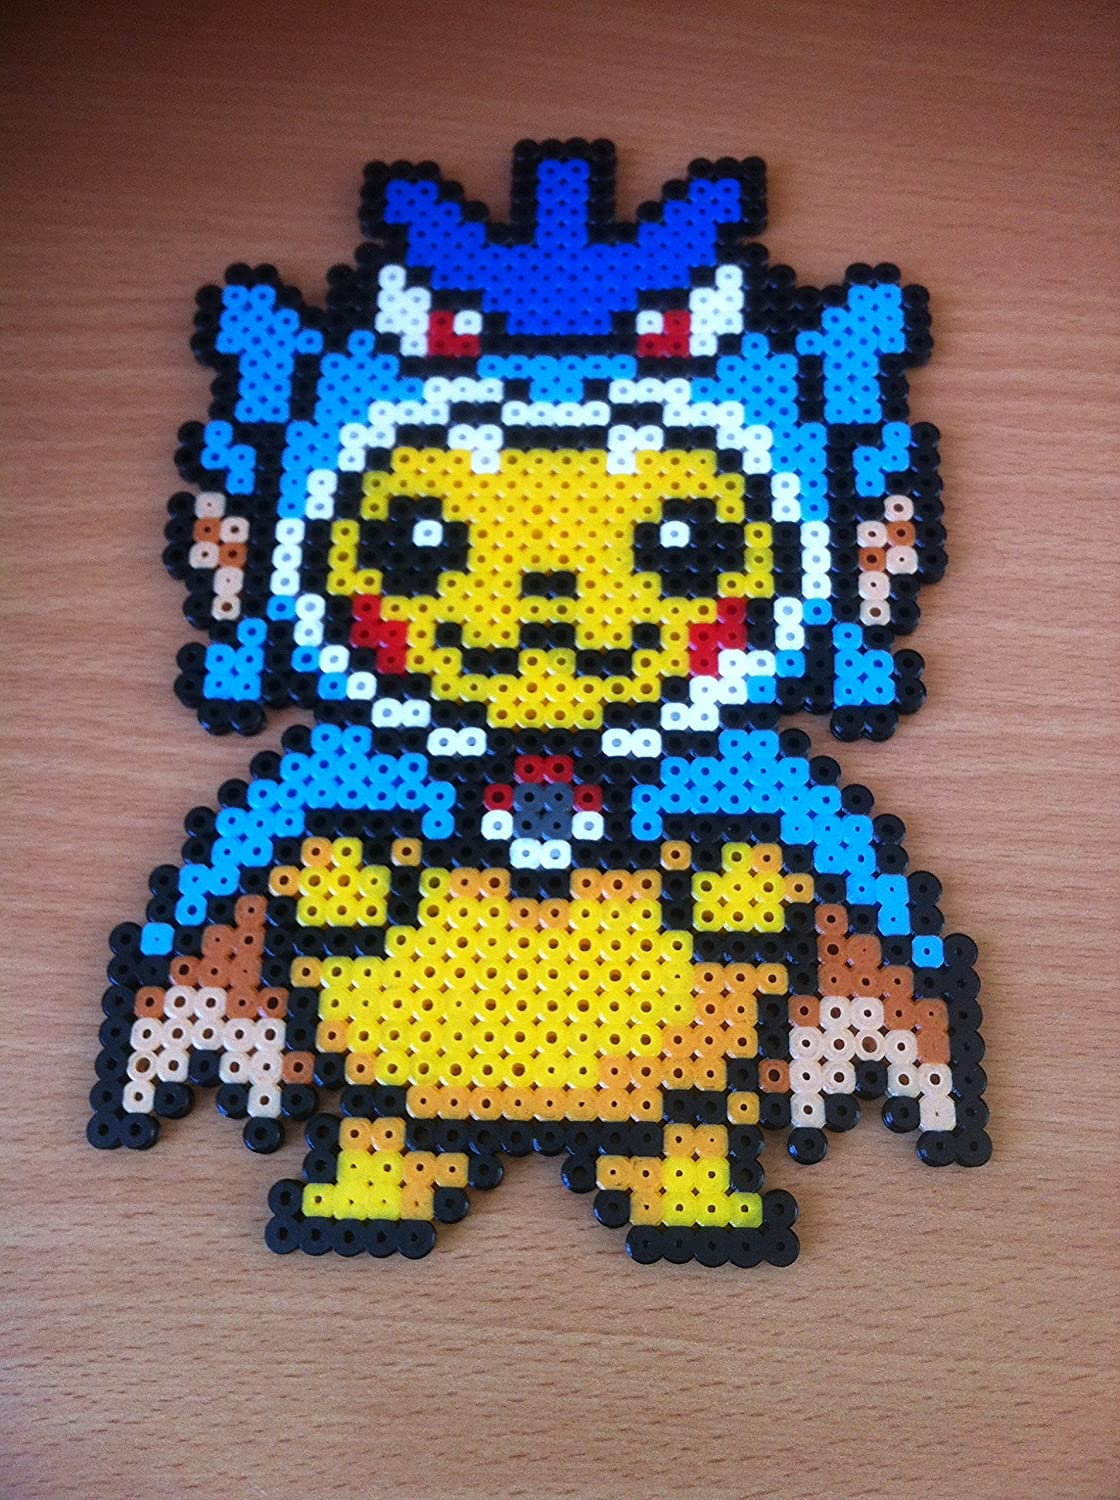 Pixel Art Hama Beads Pokemon Pikachu Costume Leviathor